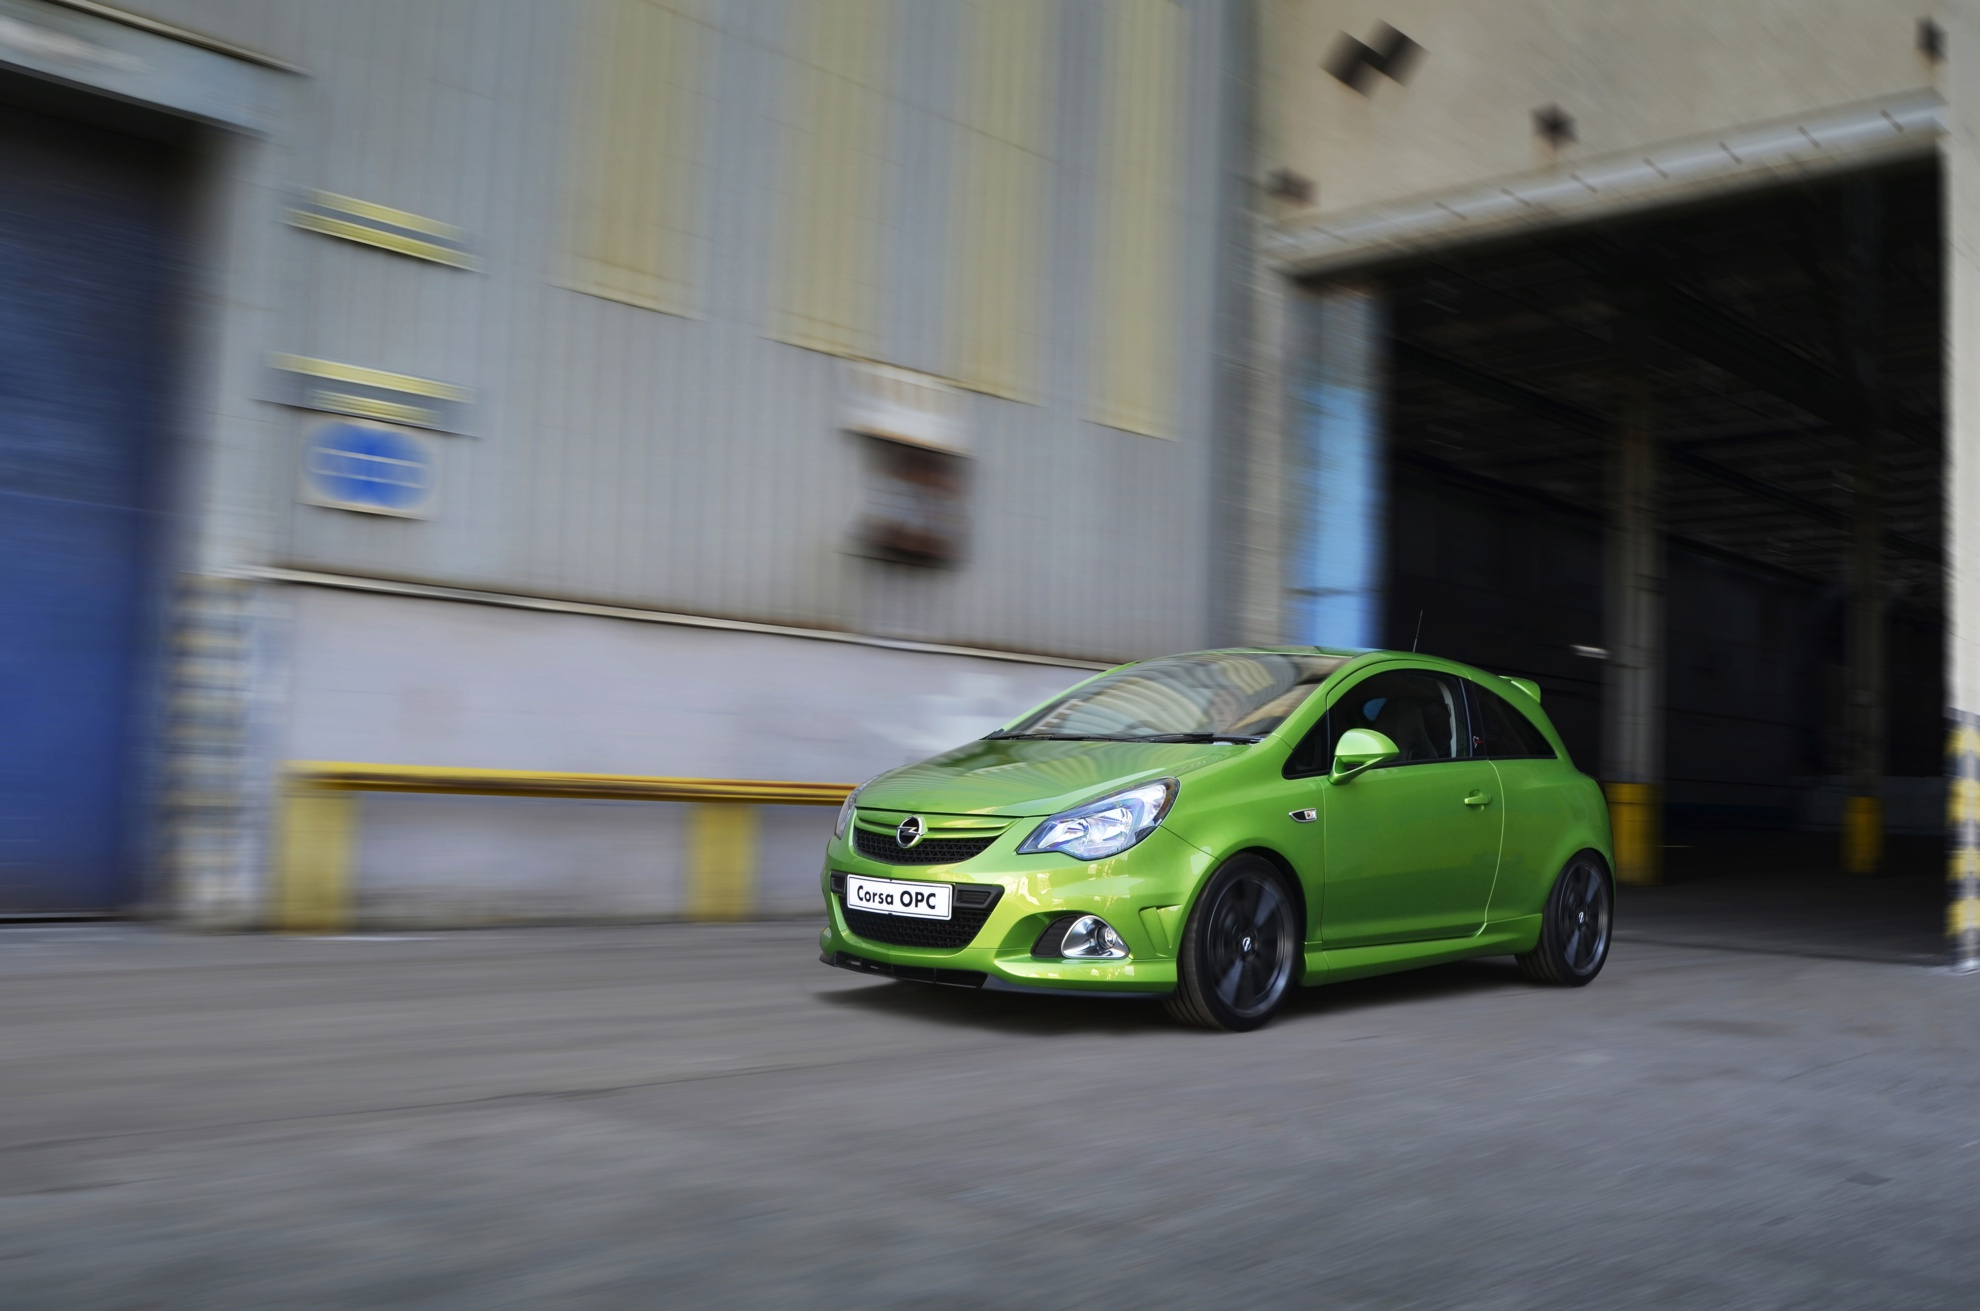 Opel Corsa Opc N 252 Rburgring Lands In South Africa